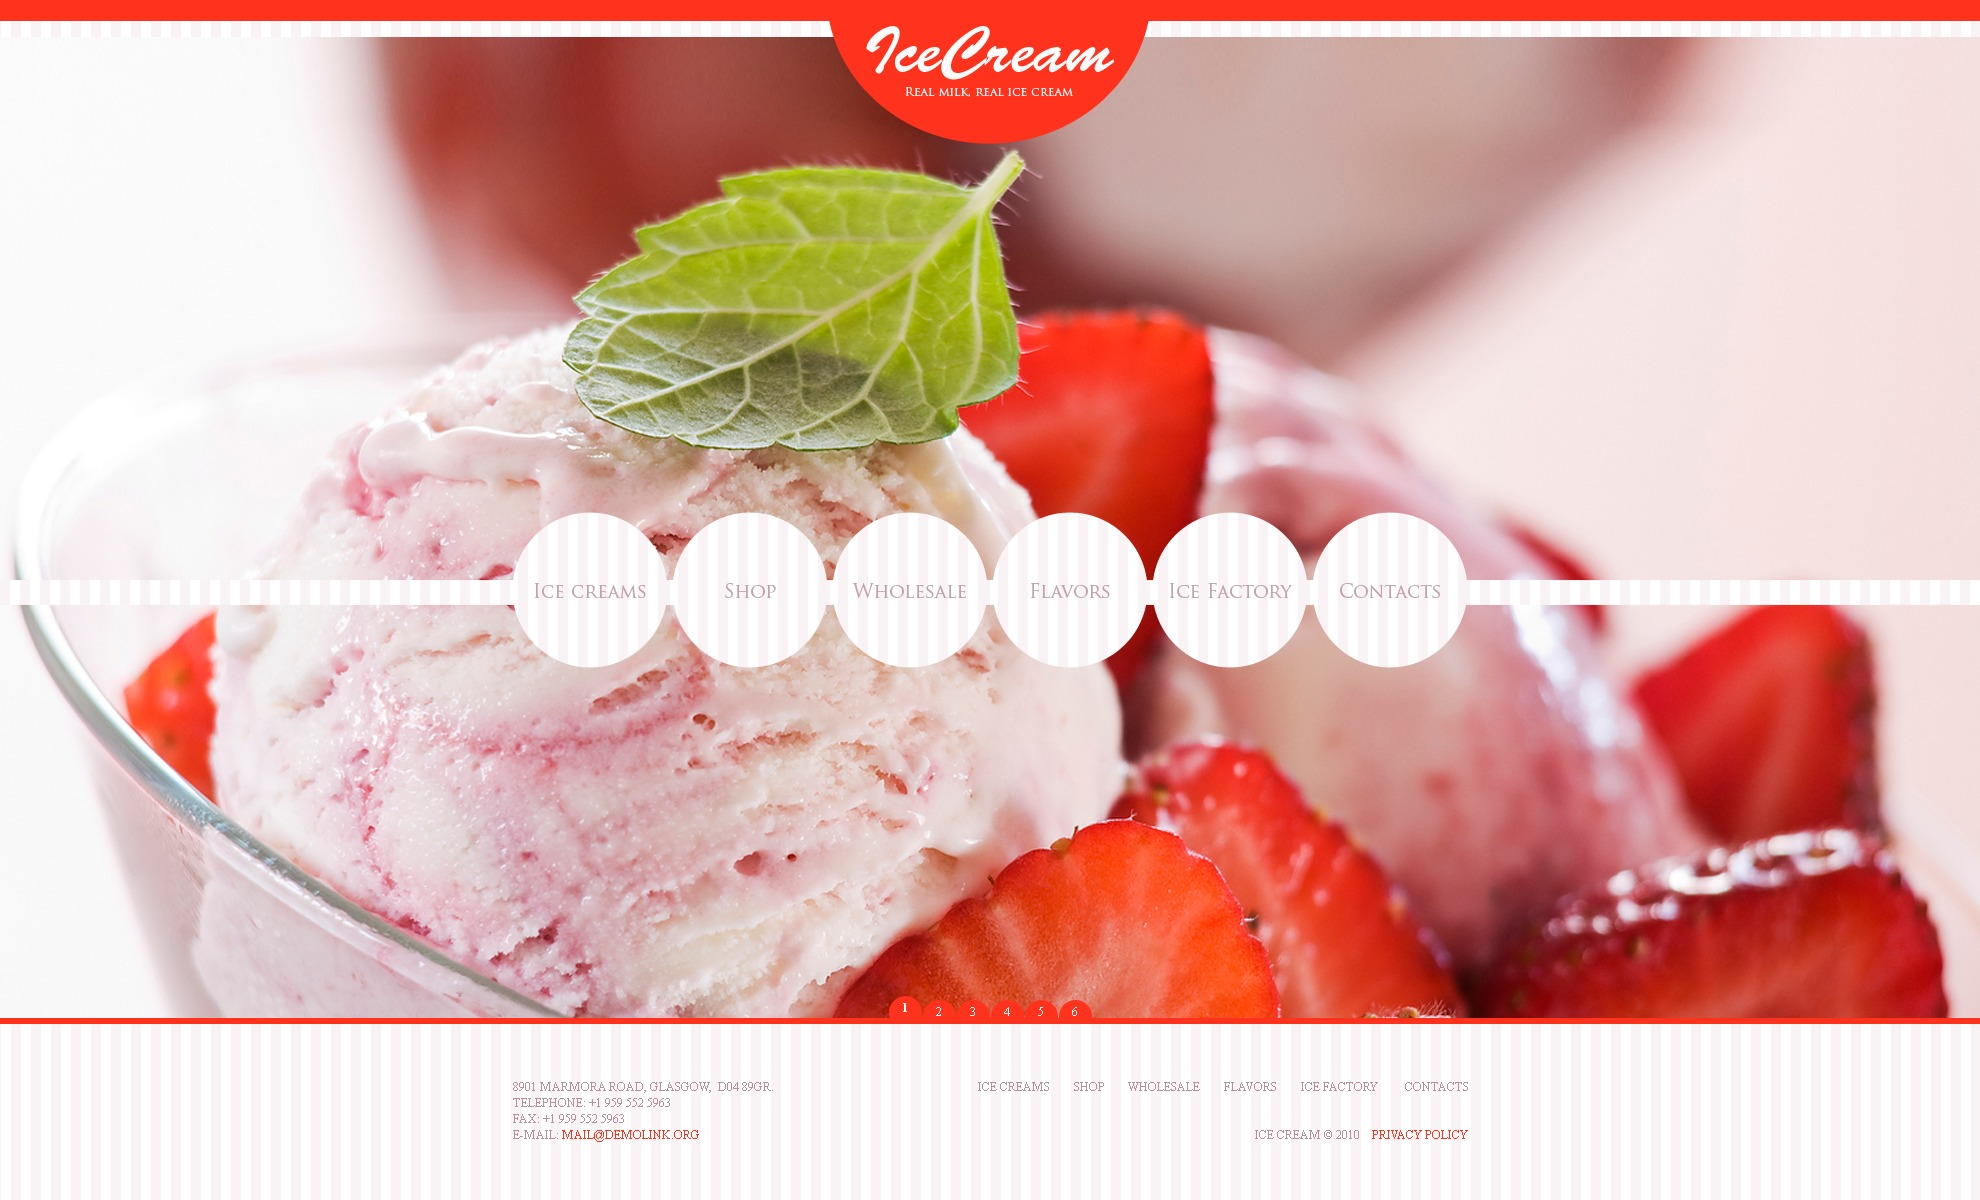 The Ice Cream PSD Design 54323, one of the best PSD templates of its kind (food & drink, wide, jquery), also known as ice cream PSD template, shop PSD template, chocolate PSD template, factory PSD template, contacts PSD template, awards PSD template, banana PSD template, water-ice PSD template, sorbet PSD template, choc-ice PSD template, vanilla PSD template, tasty PSD template, savoury PSD template, delicious PSD template, cafe and related with ice cream, shop, chocolate, factory, contacts, awards, banana, water-ice, sorbet, choc-ice, vanilla, tasty, savoury, delicious, cafe, etc.